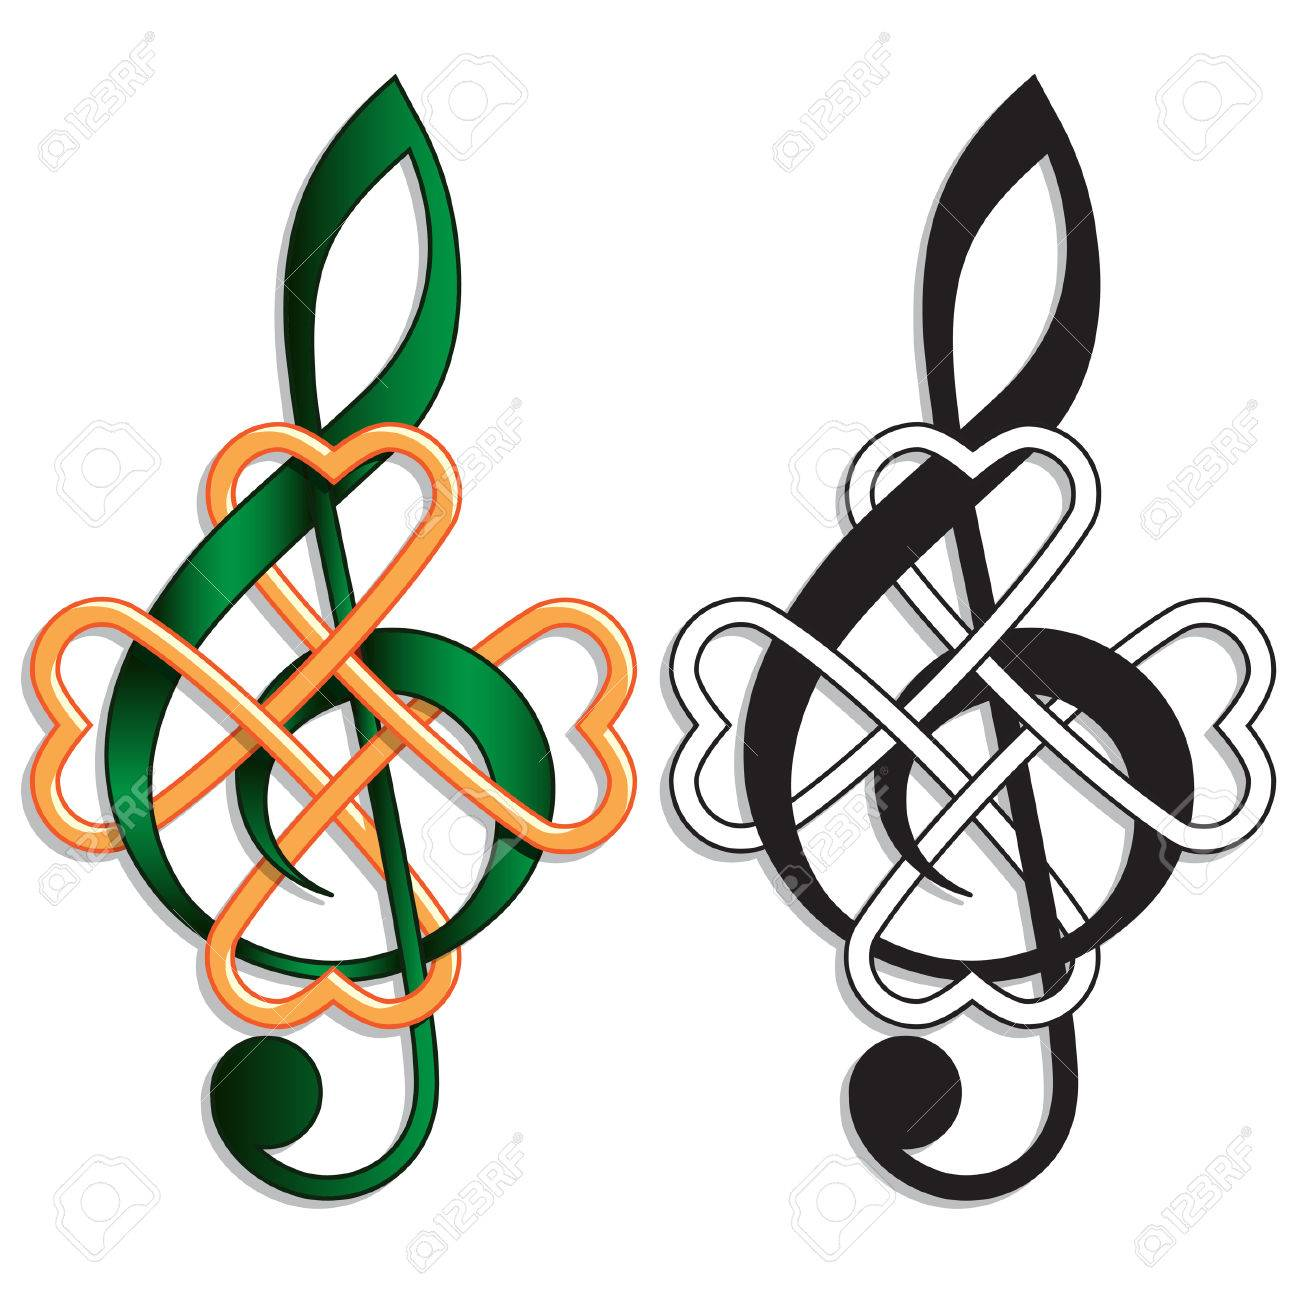 treble clef celtic knot for irish music or st patricks day theme stock vector 51335308